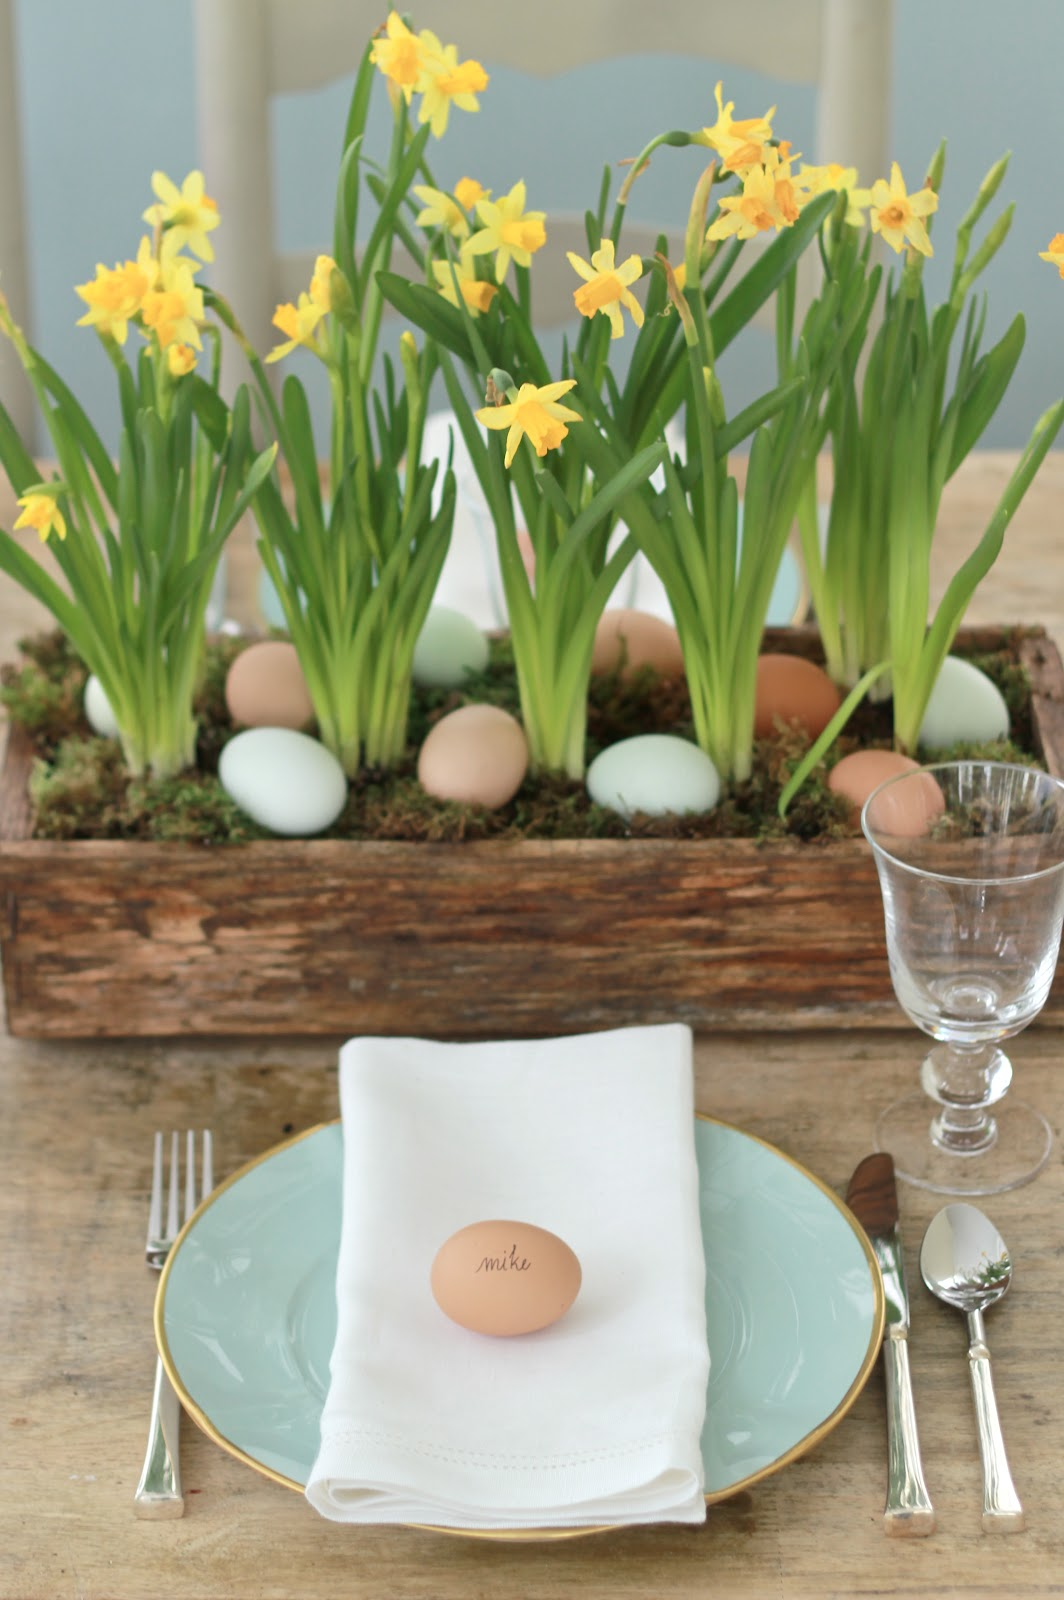 dining-room-ideas-amazing-easter-table-decorating-idea-with-green-plant-decorations-also-awesome-brunch-menu-also-baby-blue-plate-easter-table-decoration-ideas-easter-table-decorations-ideas-easter-